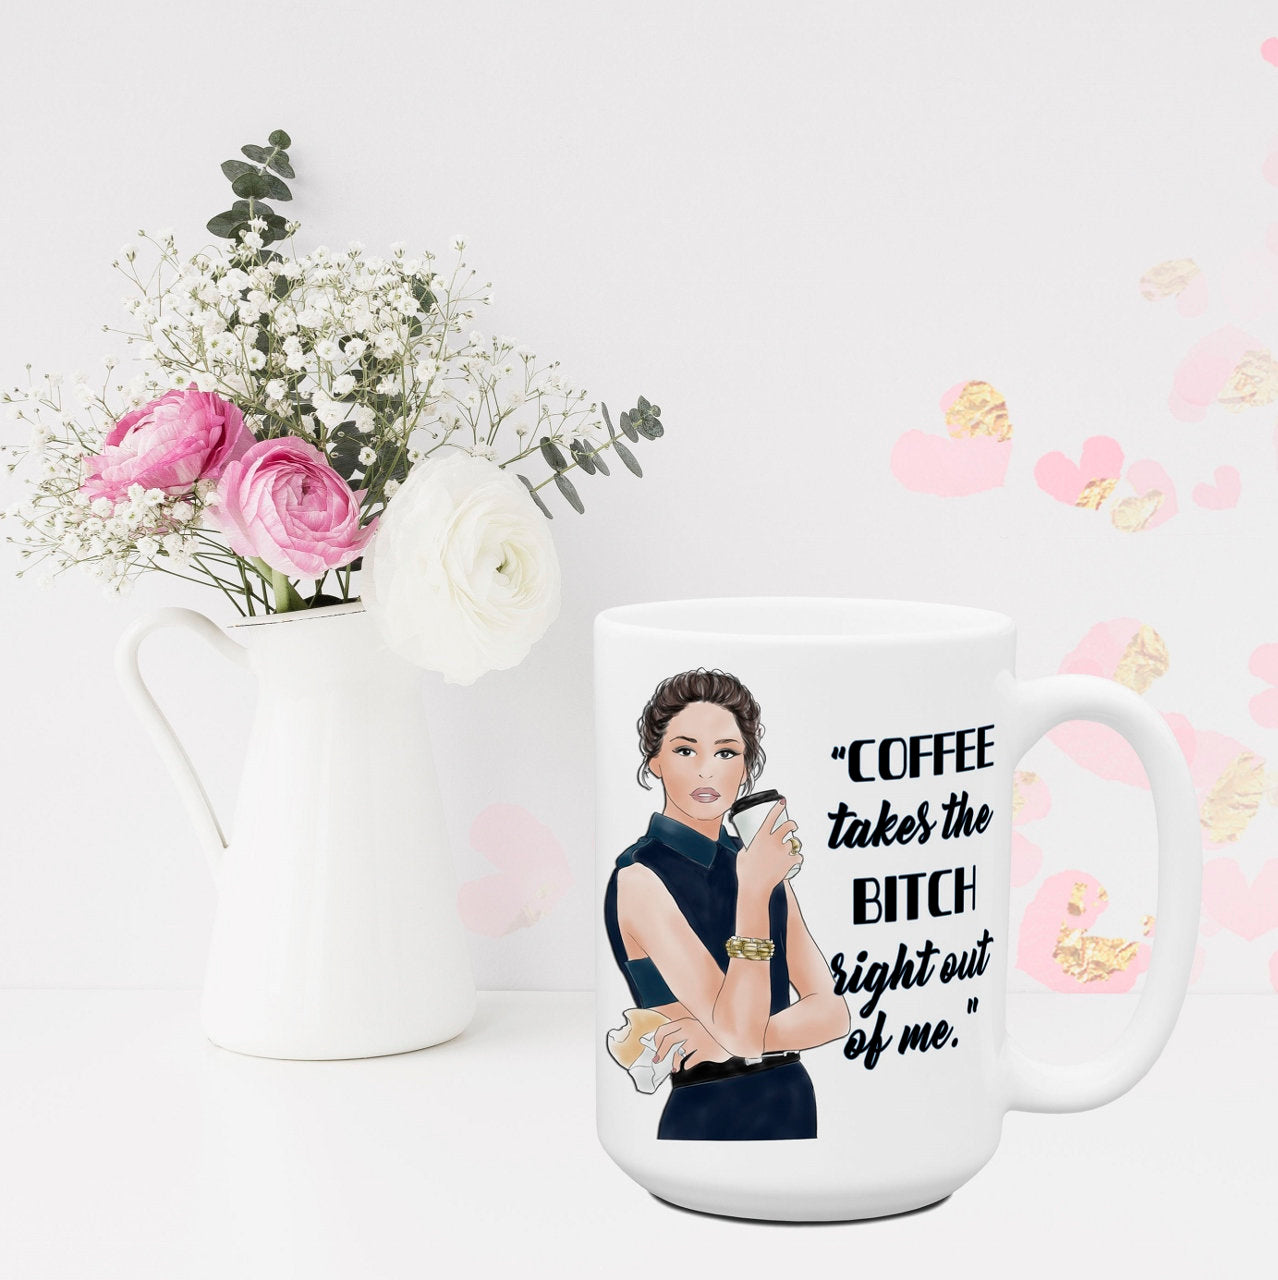 Office Coffee Cups Funny Sassy Attitude Mugs for Women Coffee Takes the Bitch Out of Me